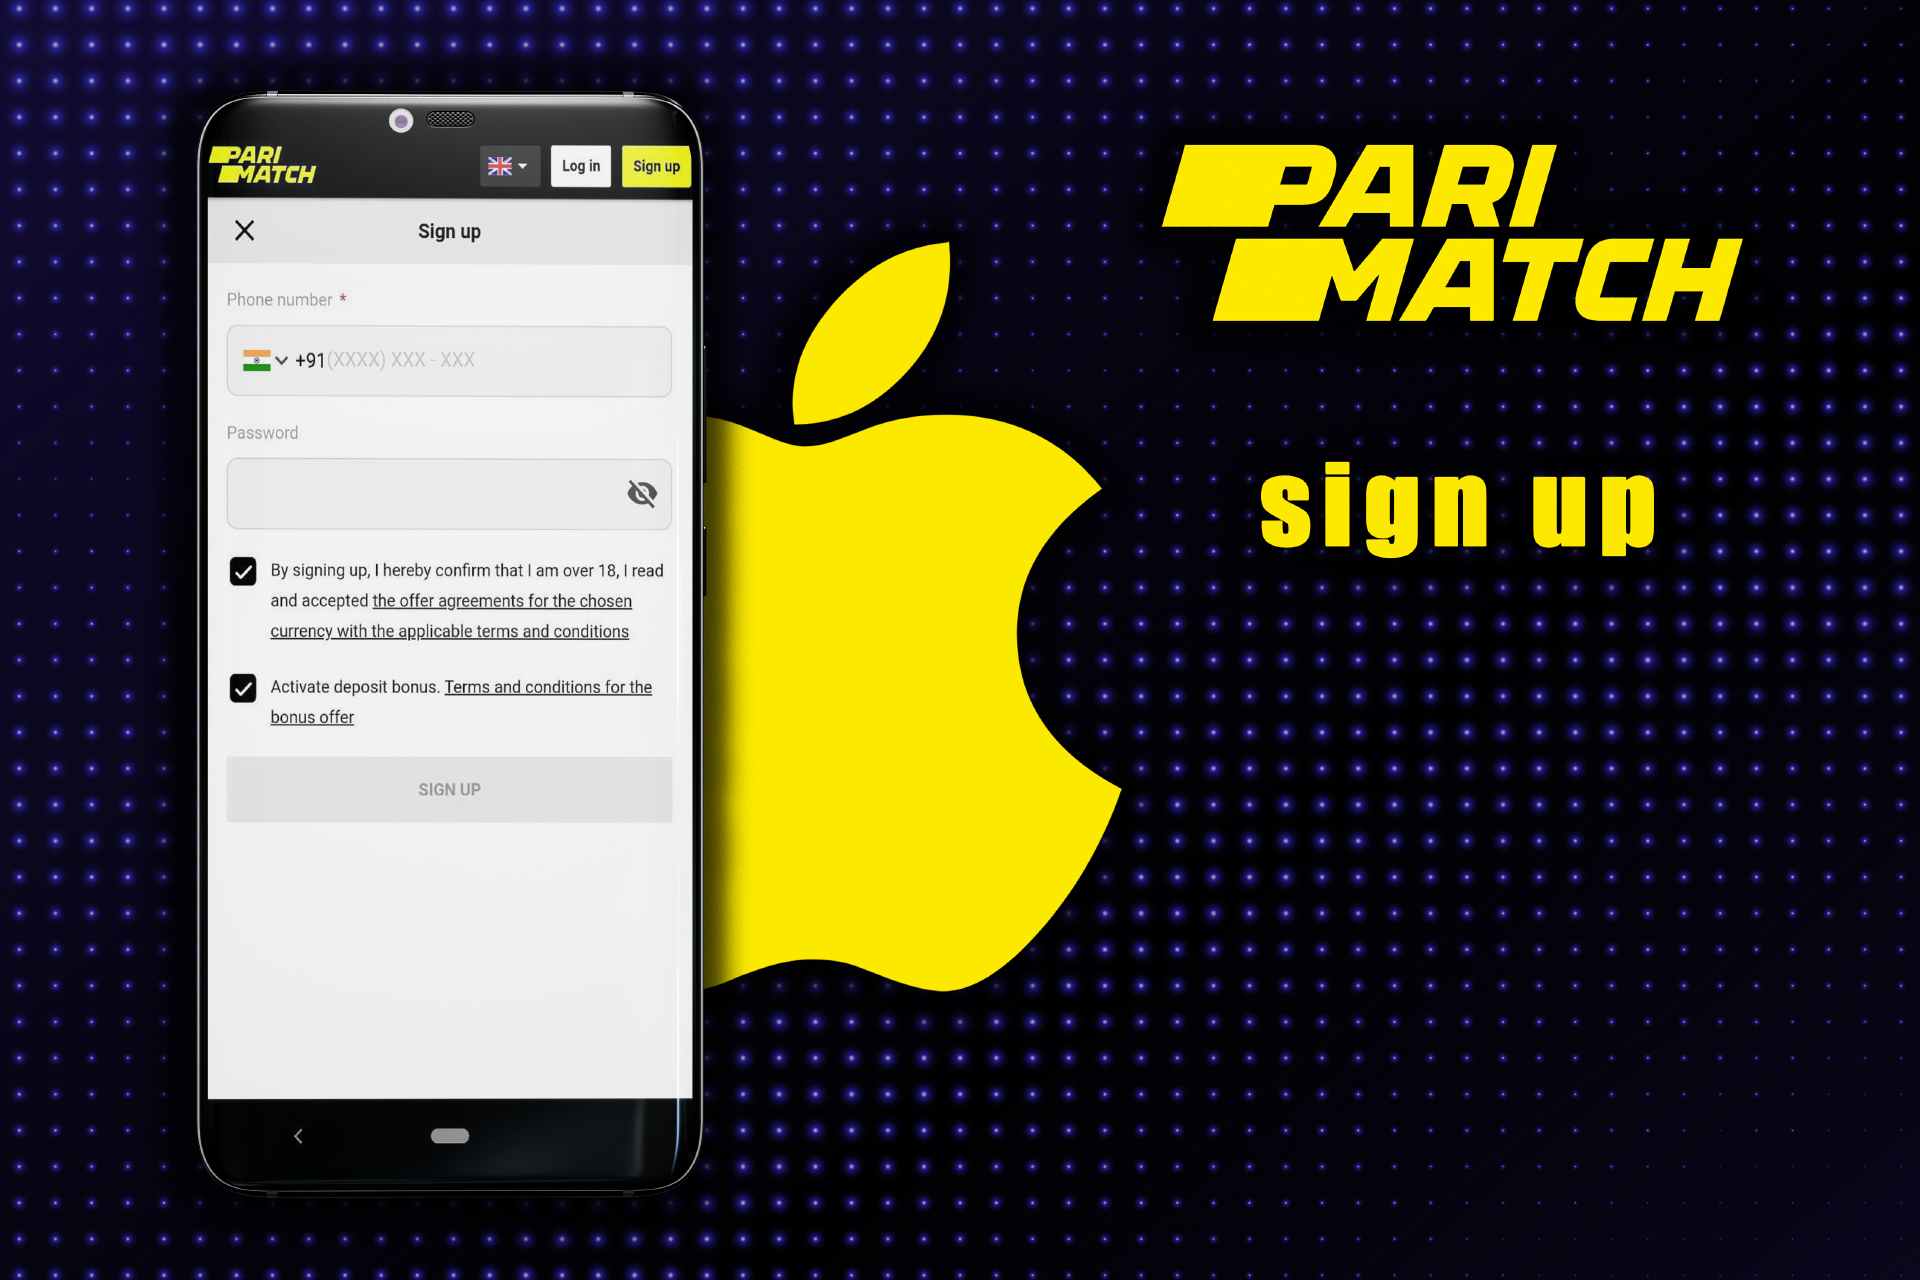 Press the 'Sign up' button and create a new account on Parimatch.